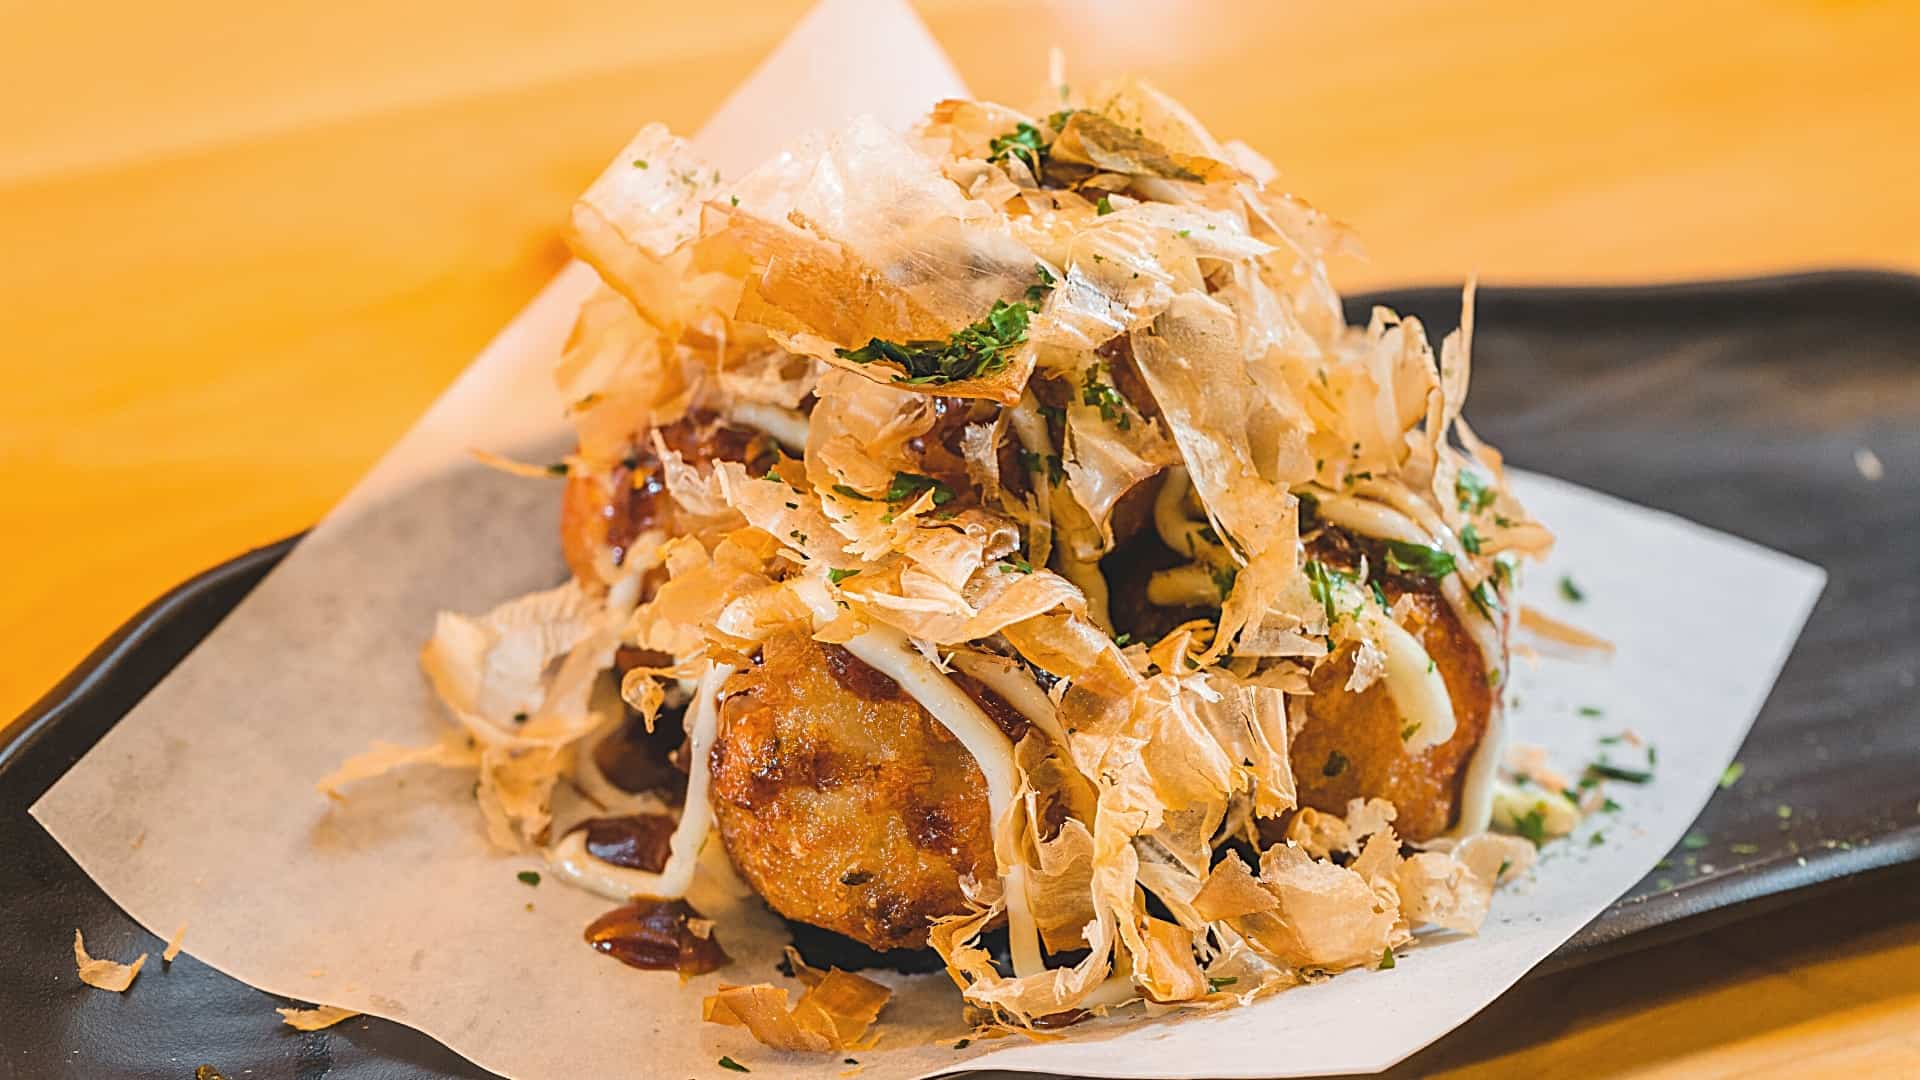 Fish takoyaki without octopus but with cod